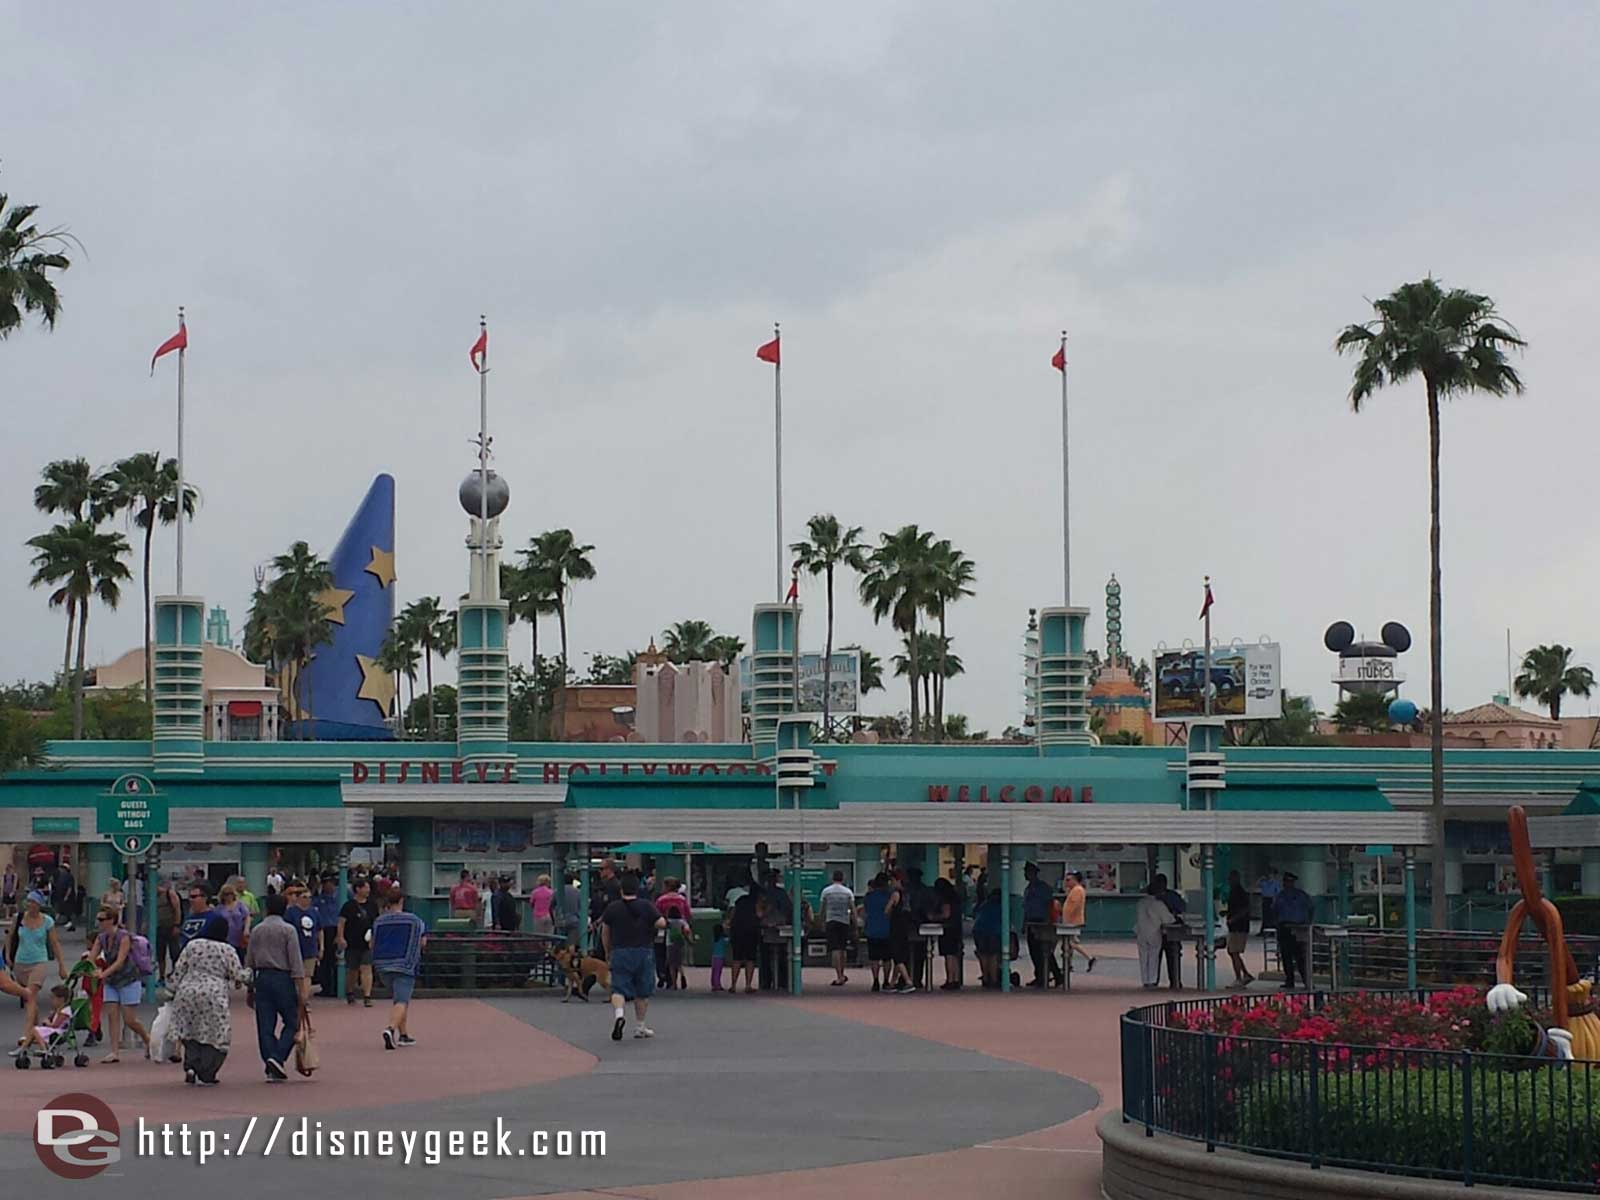 Back for the evening – Disney's Hollywood Studios